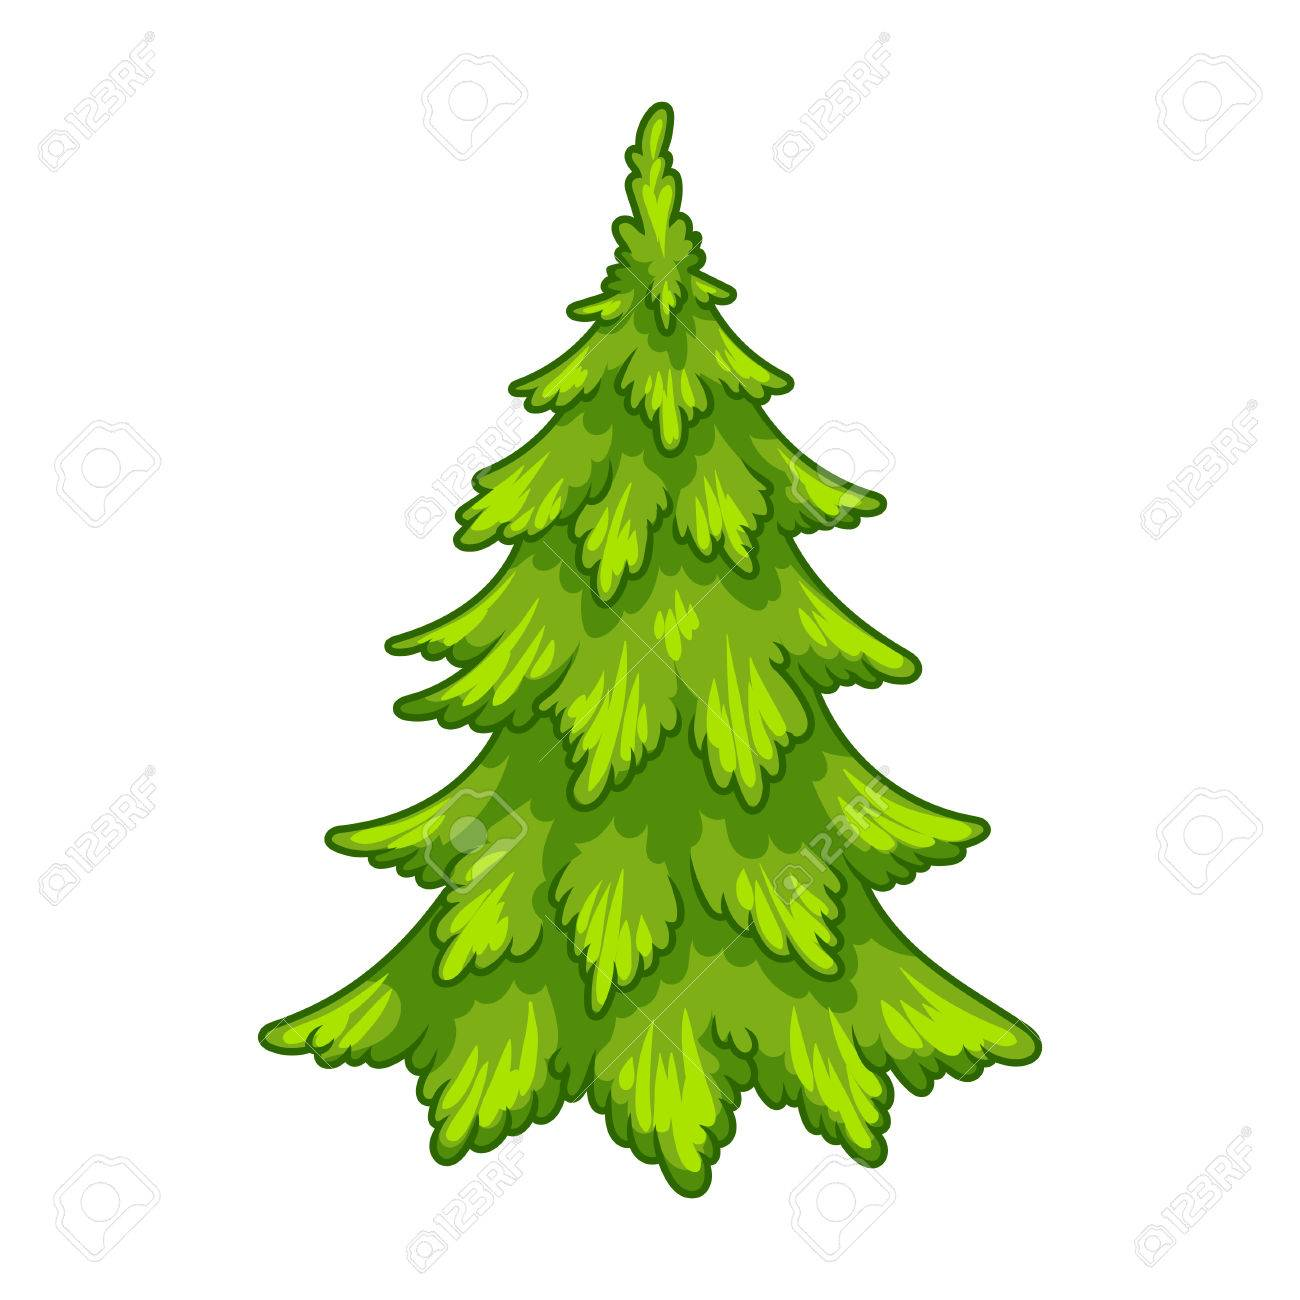 Christmas Tree Undecorated Fir On A White Background Royalty Free Cliparts Vectors And Stock Illustration Image 47120721 This tree is hollow inside. christmas tree undecorated fir on a white background